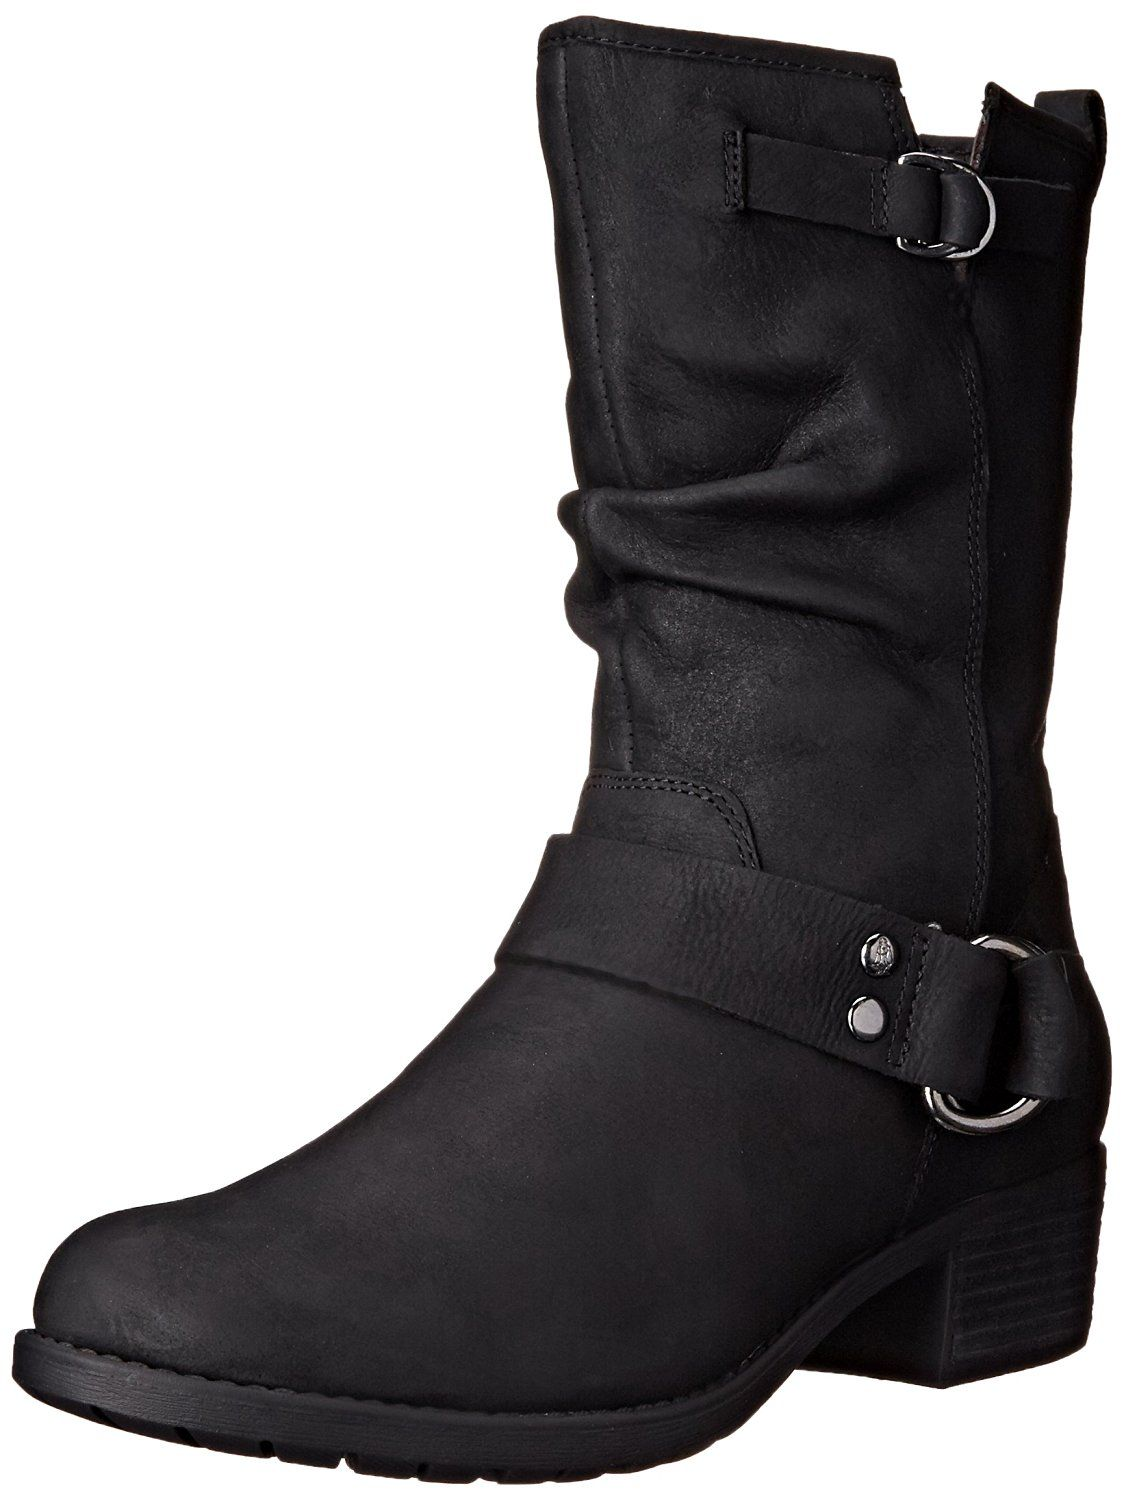 Hush Puppies Women S Emelee Overton Winter Boot Startling Review Available Here Women S Winter Boots Winter Boots Women Boots Womens Boots